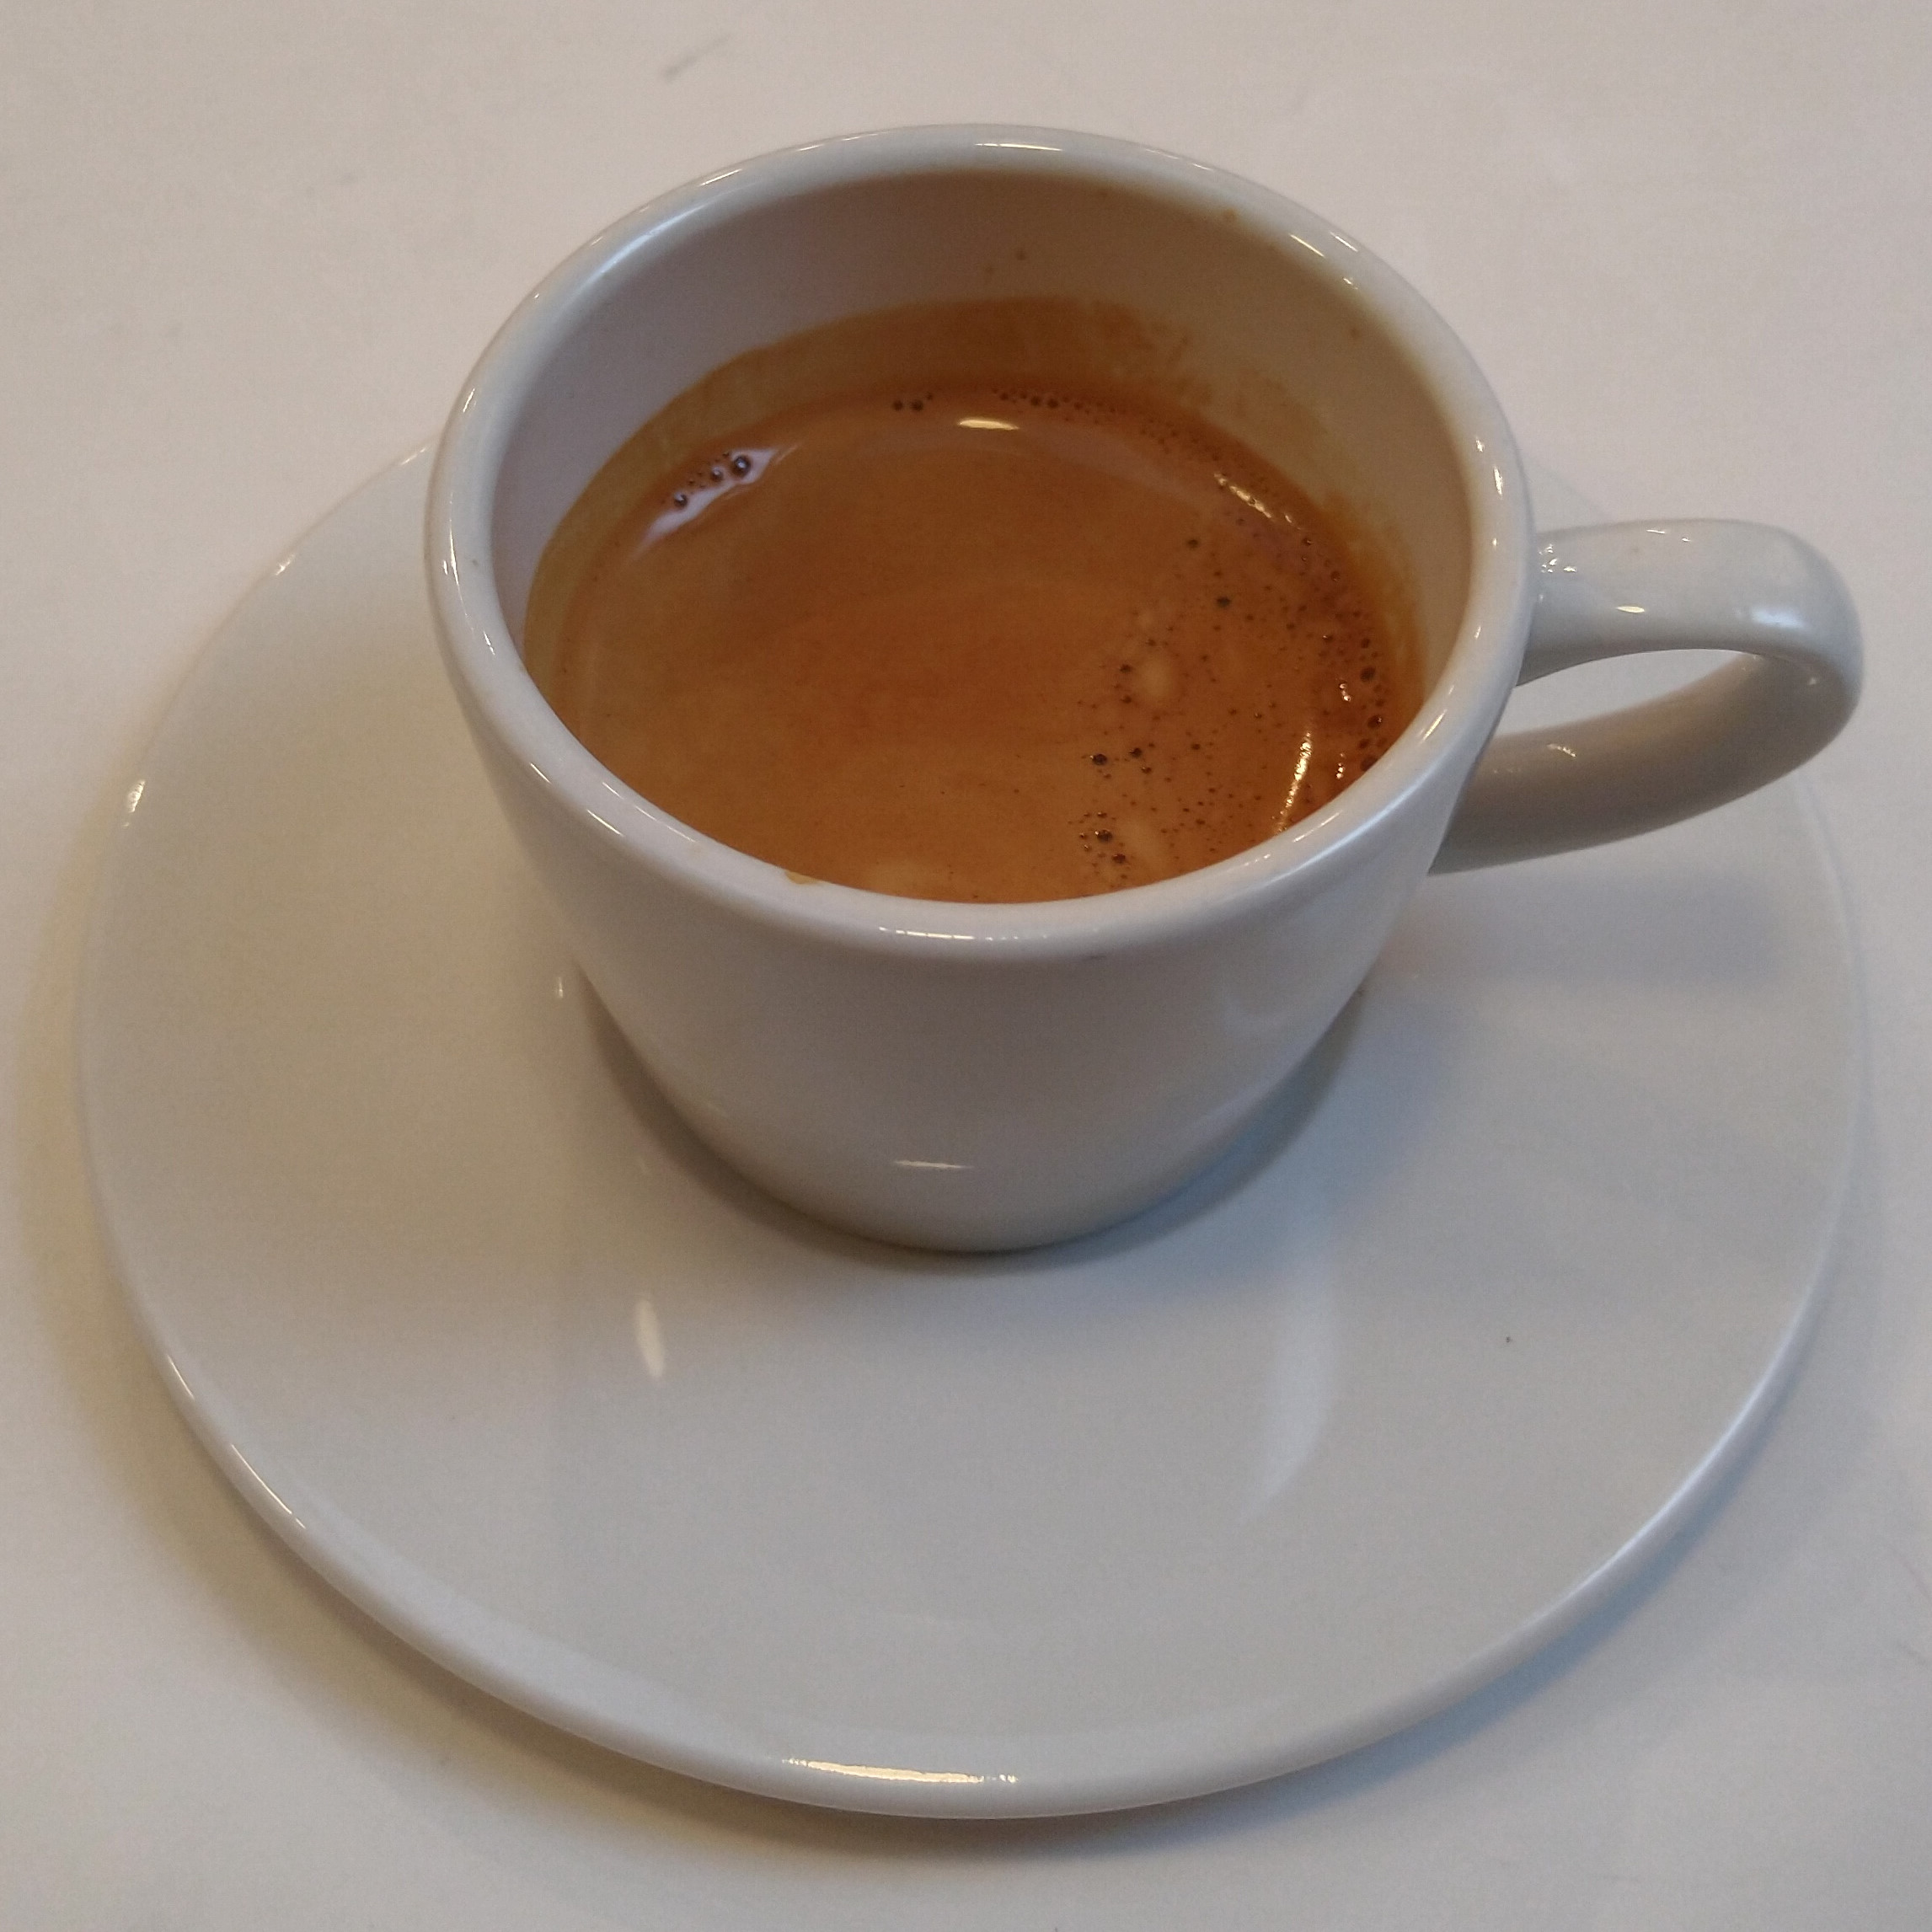 A gorgeous single-origin Ethiopian espresso, roasted in-house, and served in a classic white cup at Kiss the Hippo, Fitzrovia.